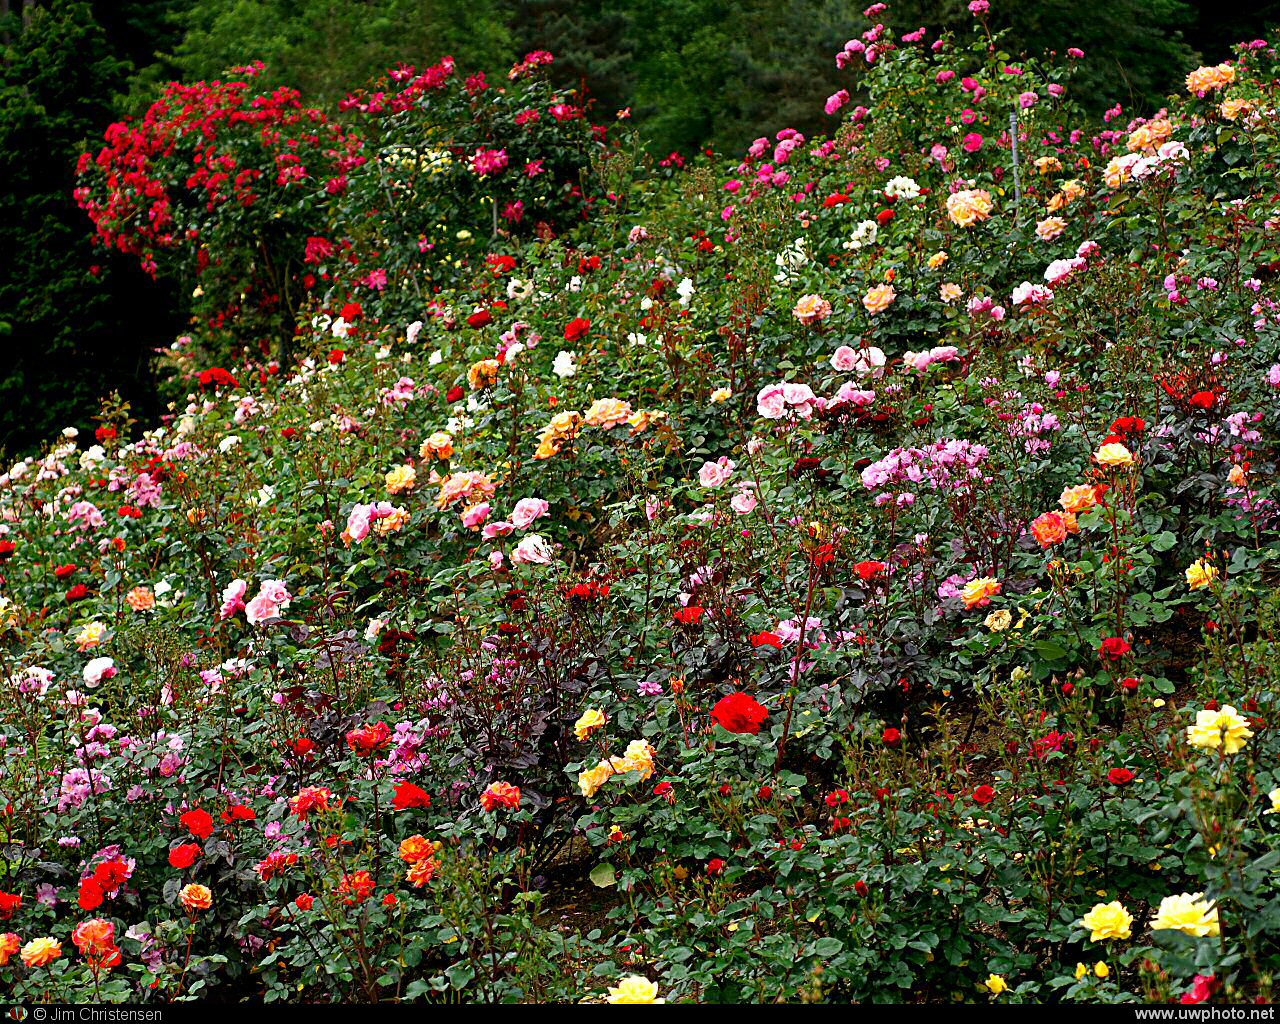 Field of Flowers: Roses from the International Rose Test Garden in Portland Oregon, the City of Roses.